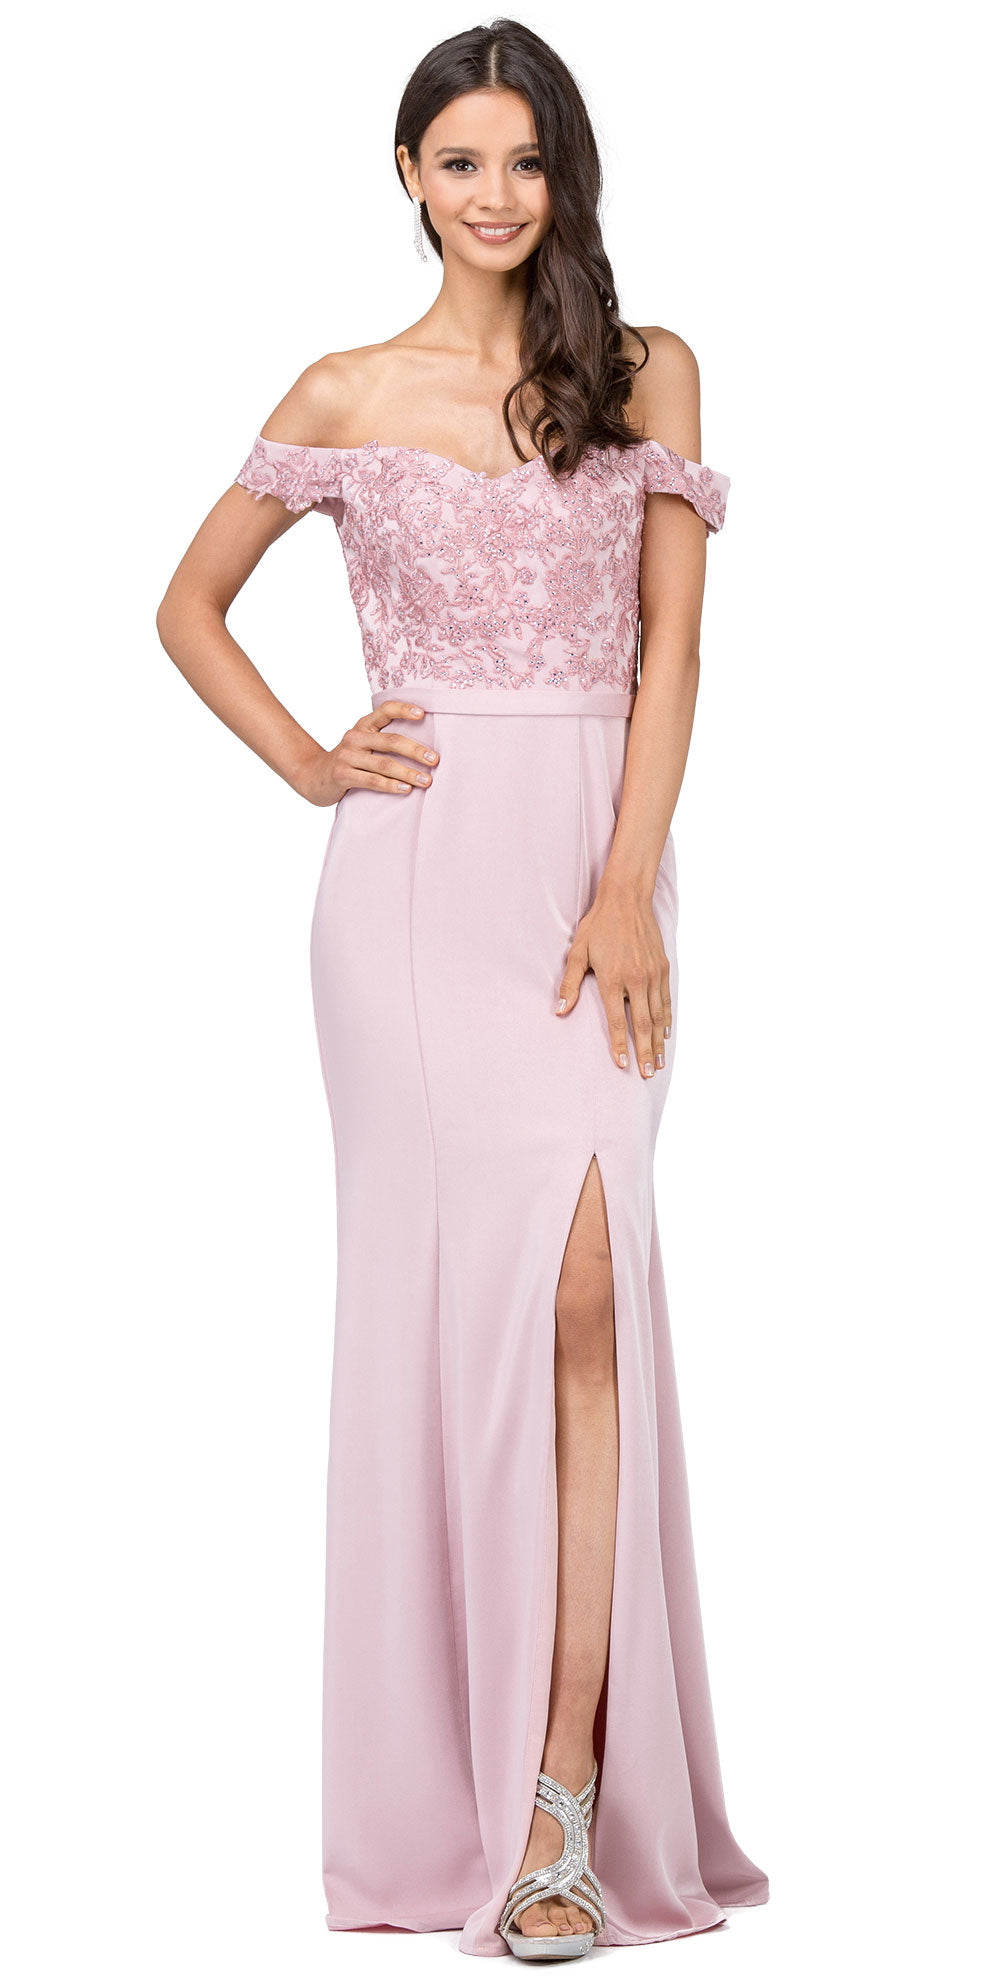 Image of Off-the-shoulder Lace Accent Top Long Prom Dress in Dusty Pink